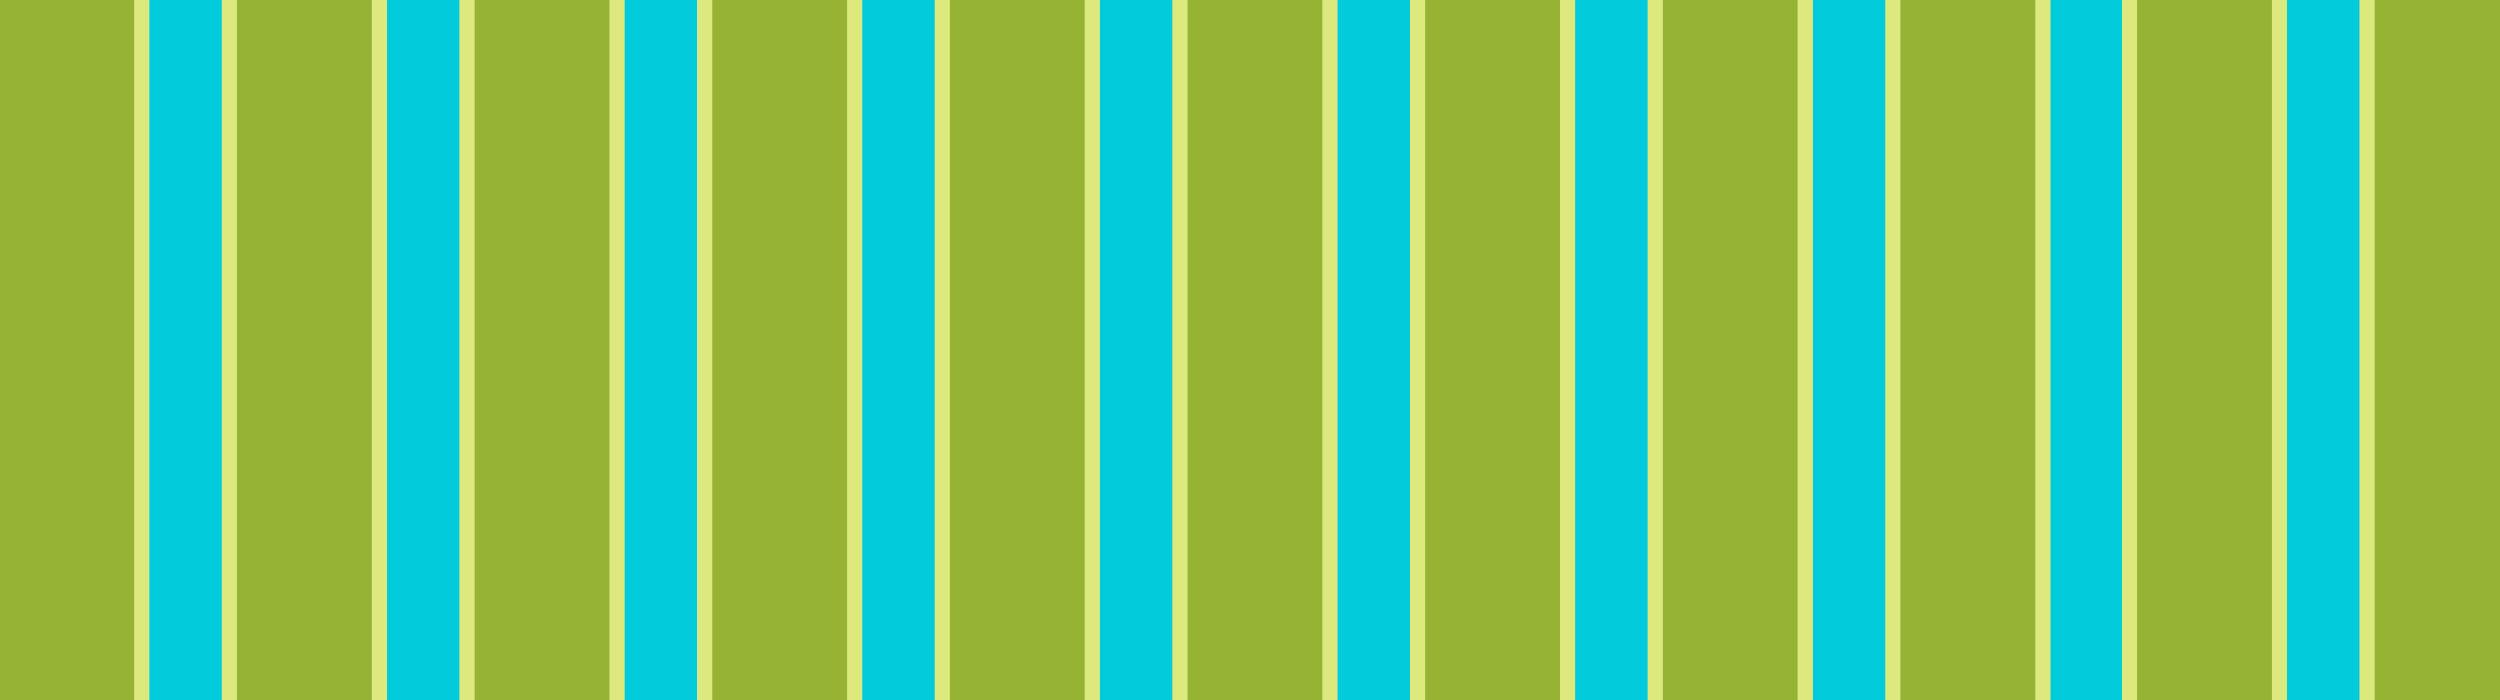 Featured Slide - Striped BG